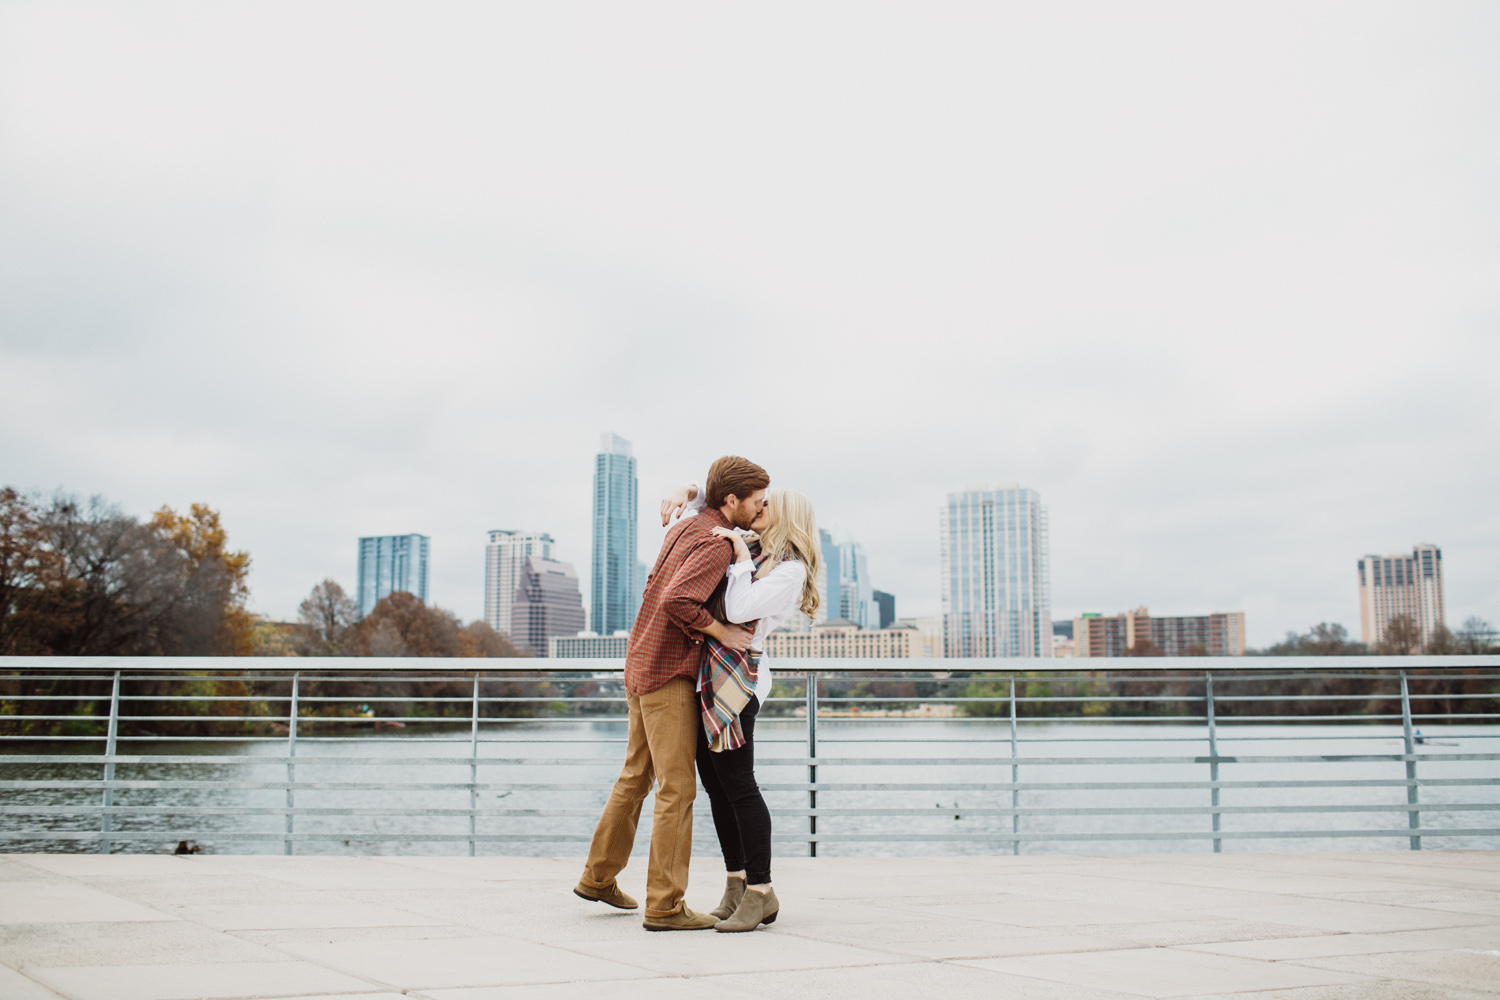 Downtown Boardwalk Austin Texas   Engagement Session   Lisa Woods Photography